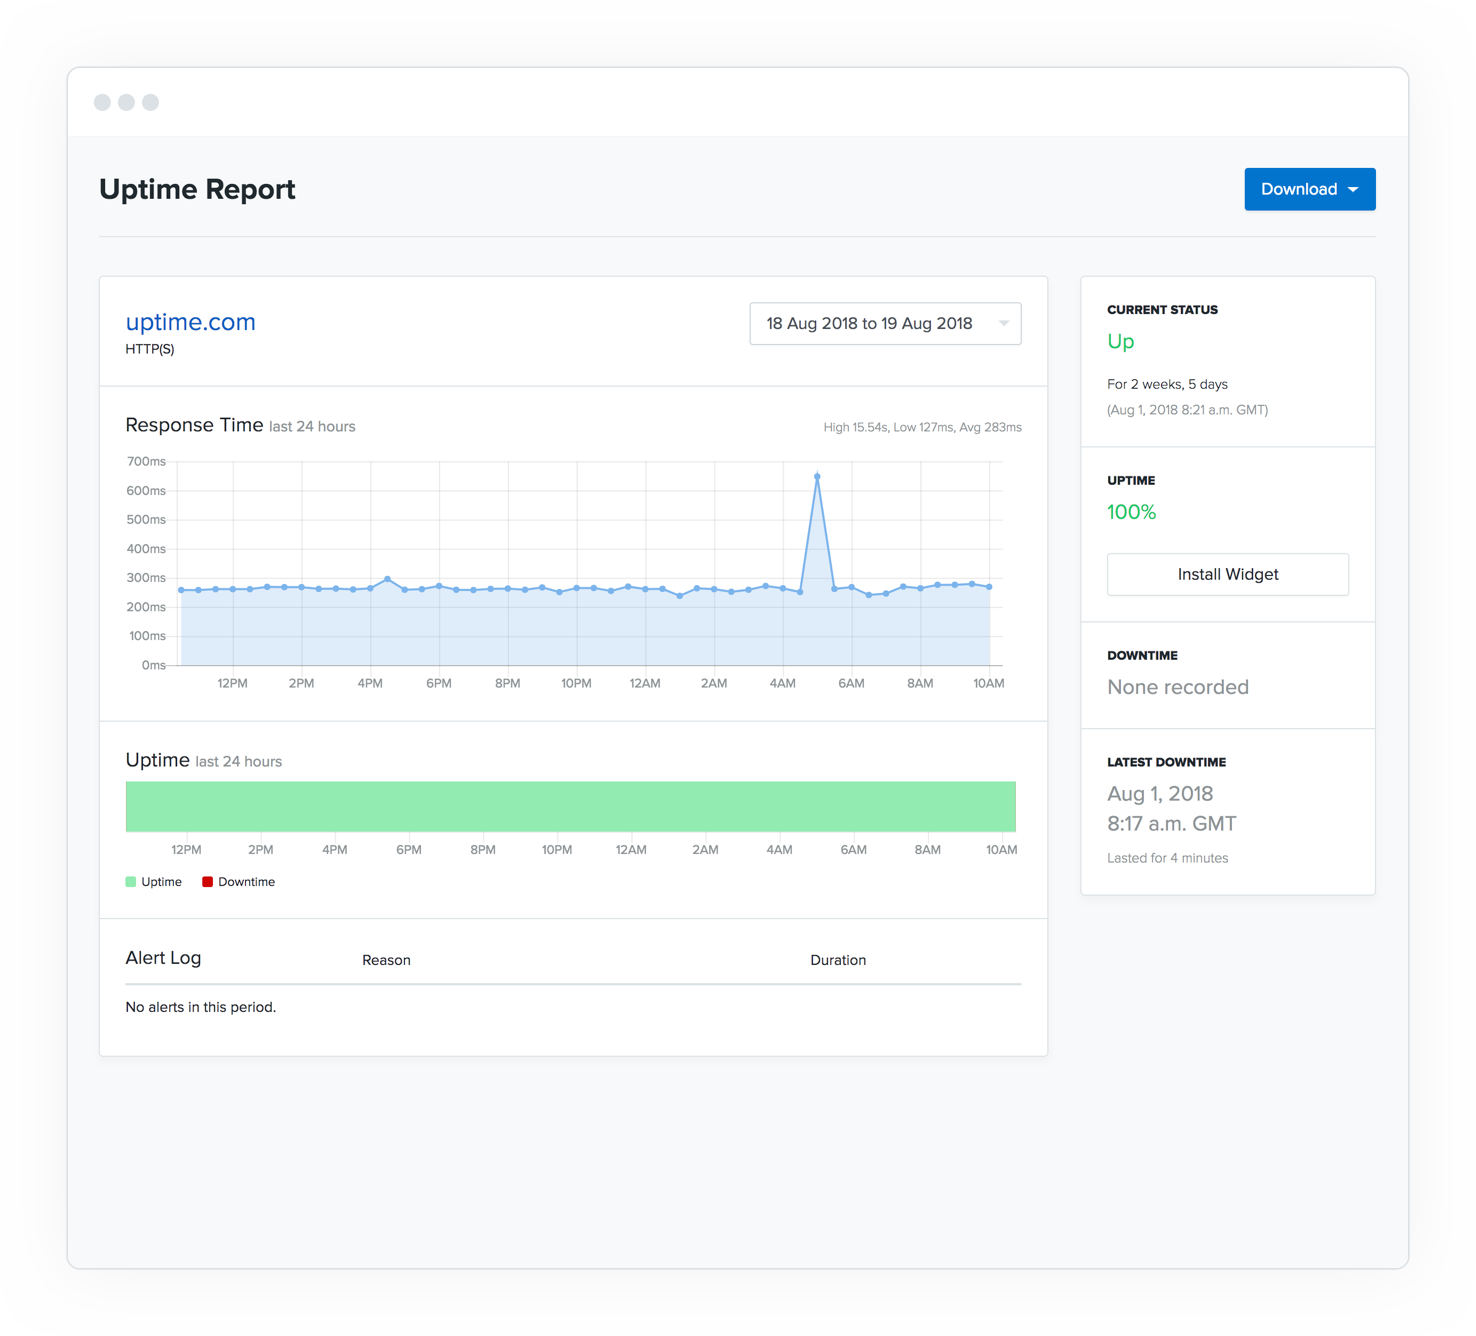 Uptime Monitoring - A smarter monitoring system for downtime incident reporting with key statistics at your fingertips.